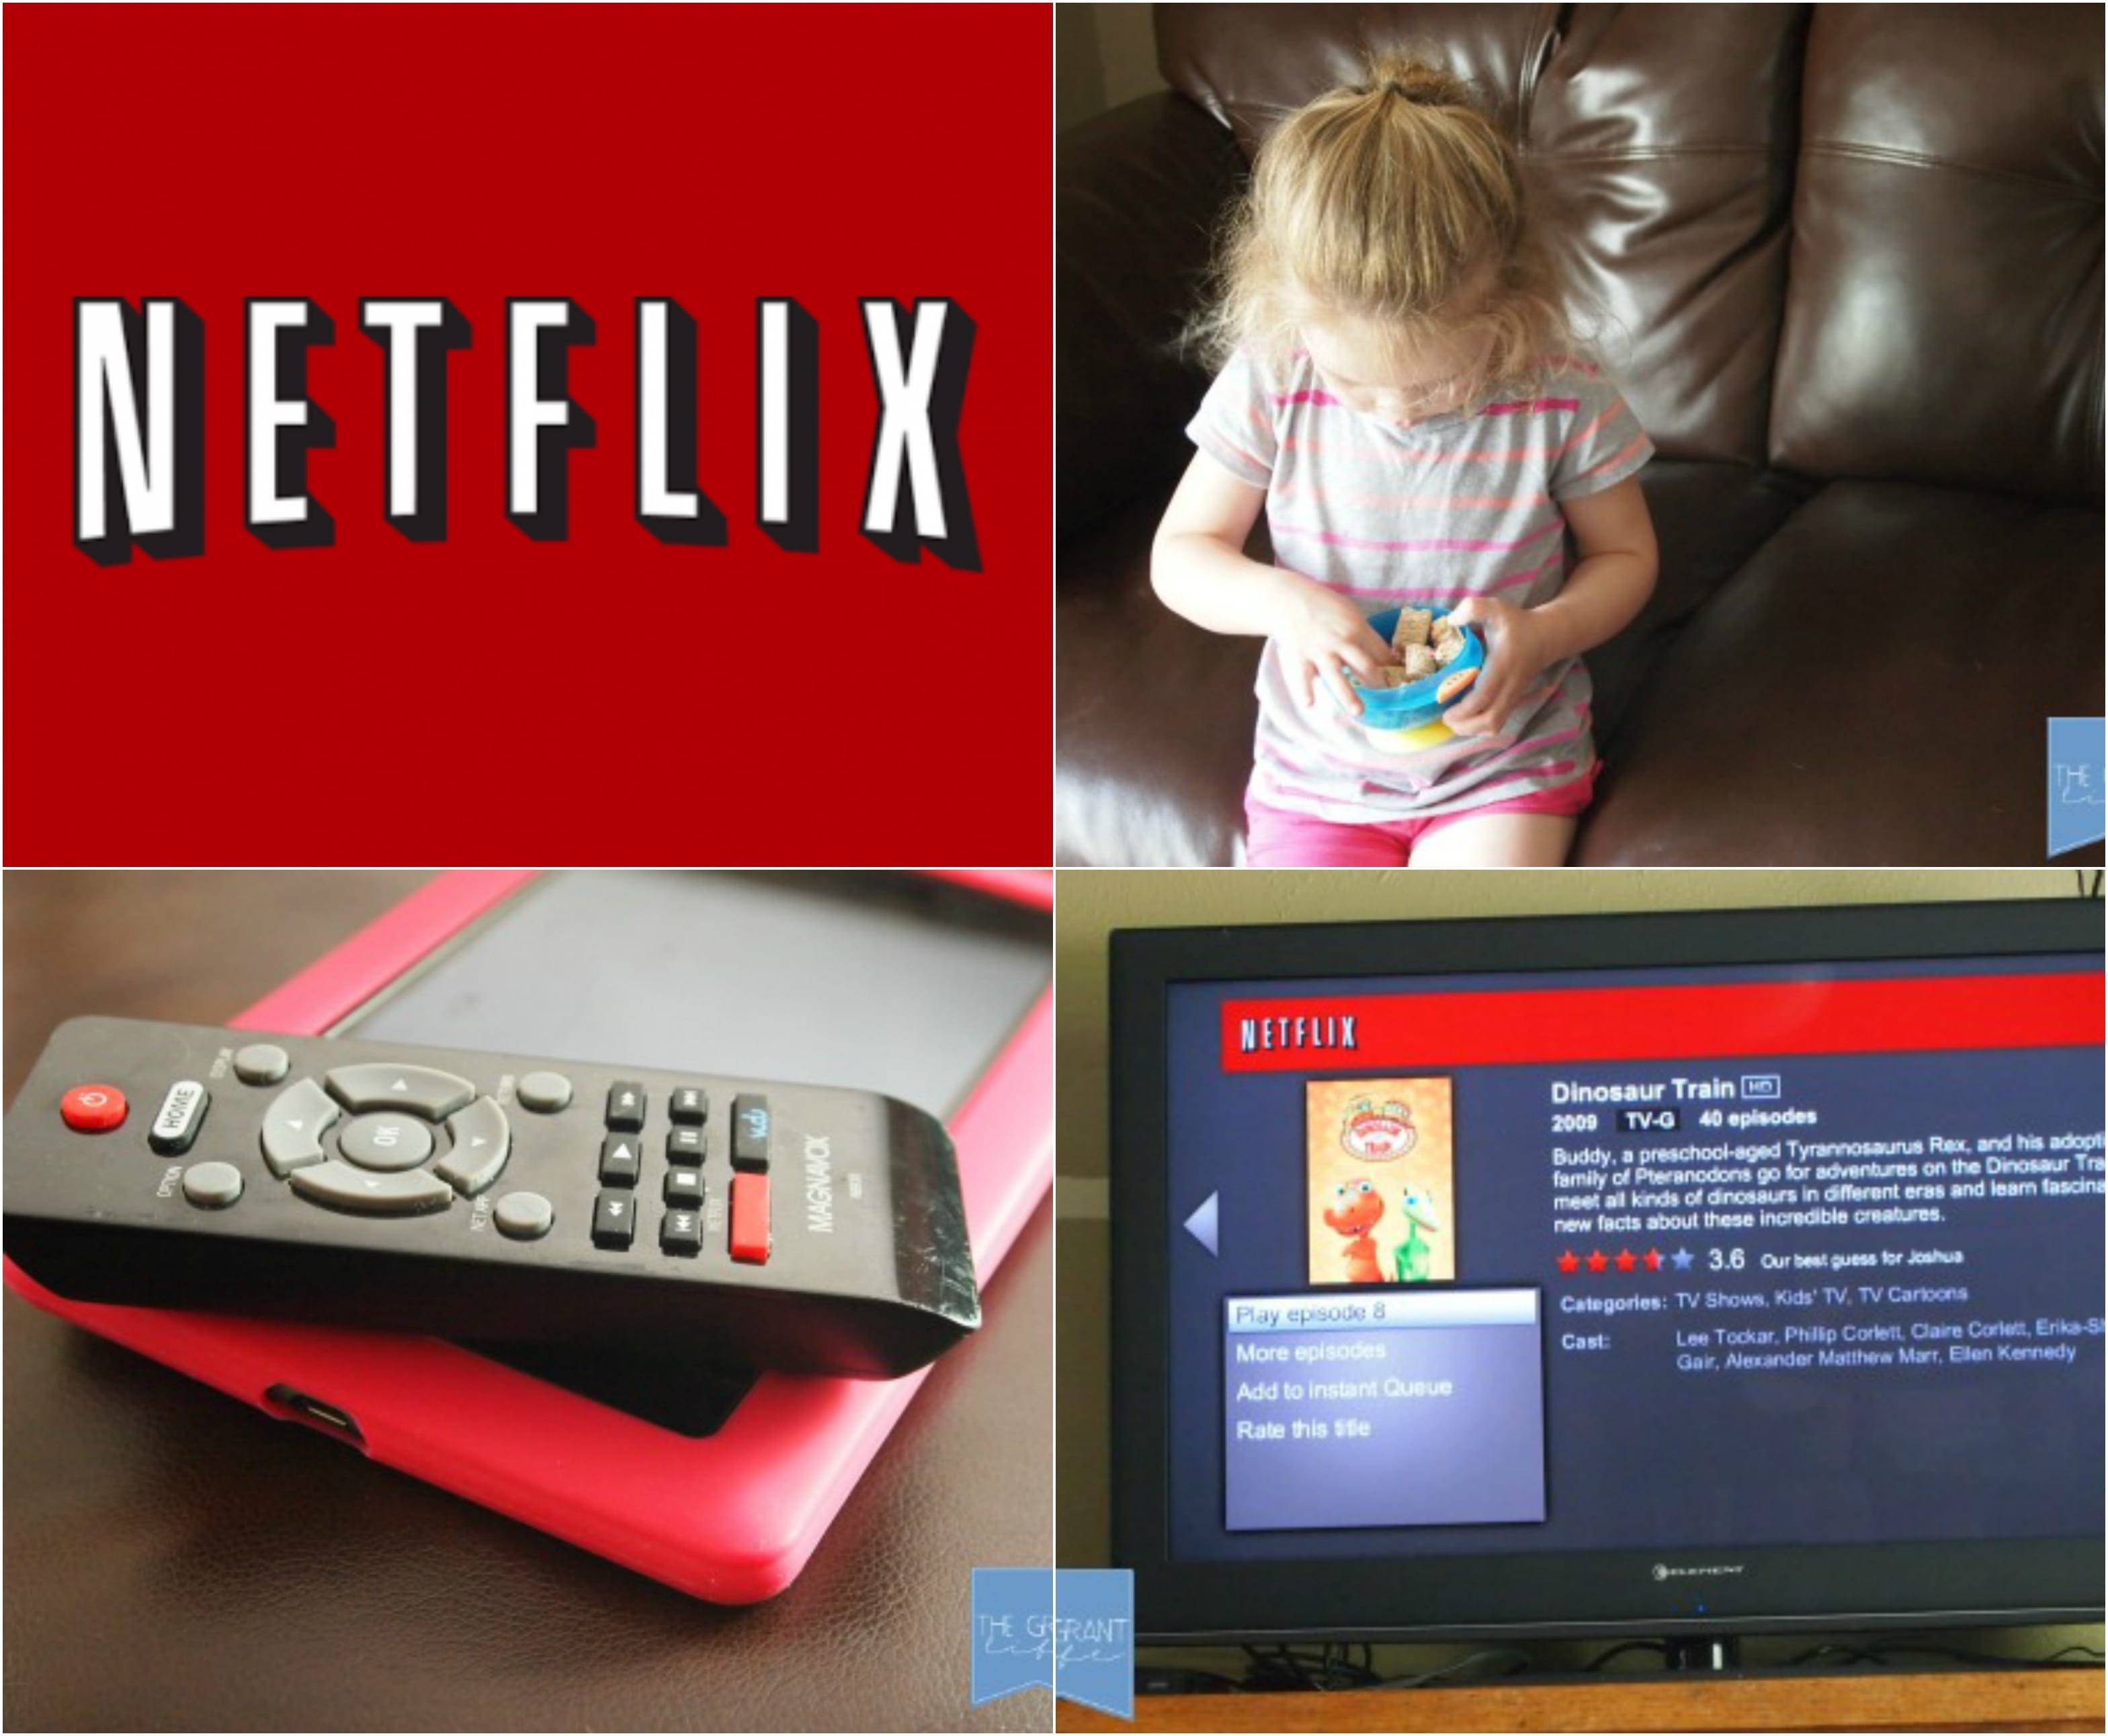 Our Morning Routine #NetflixKids